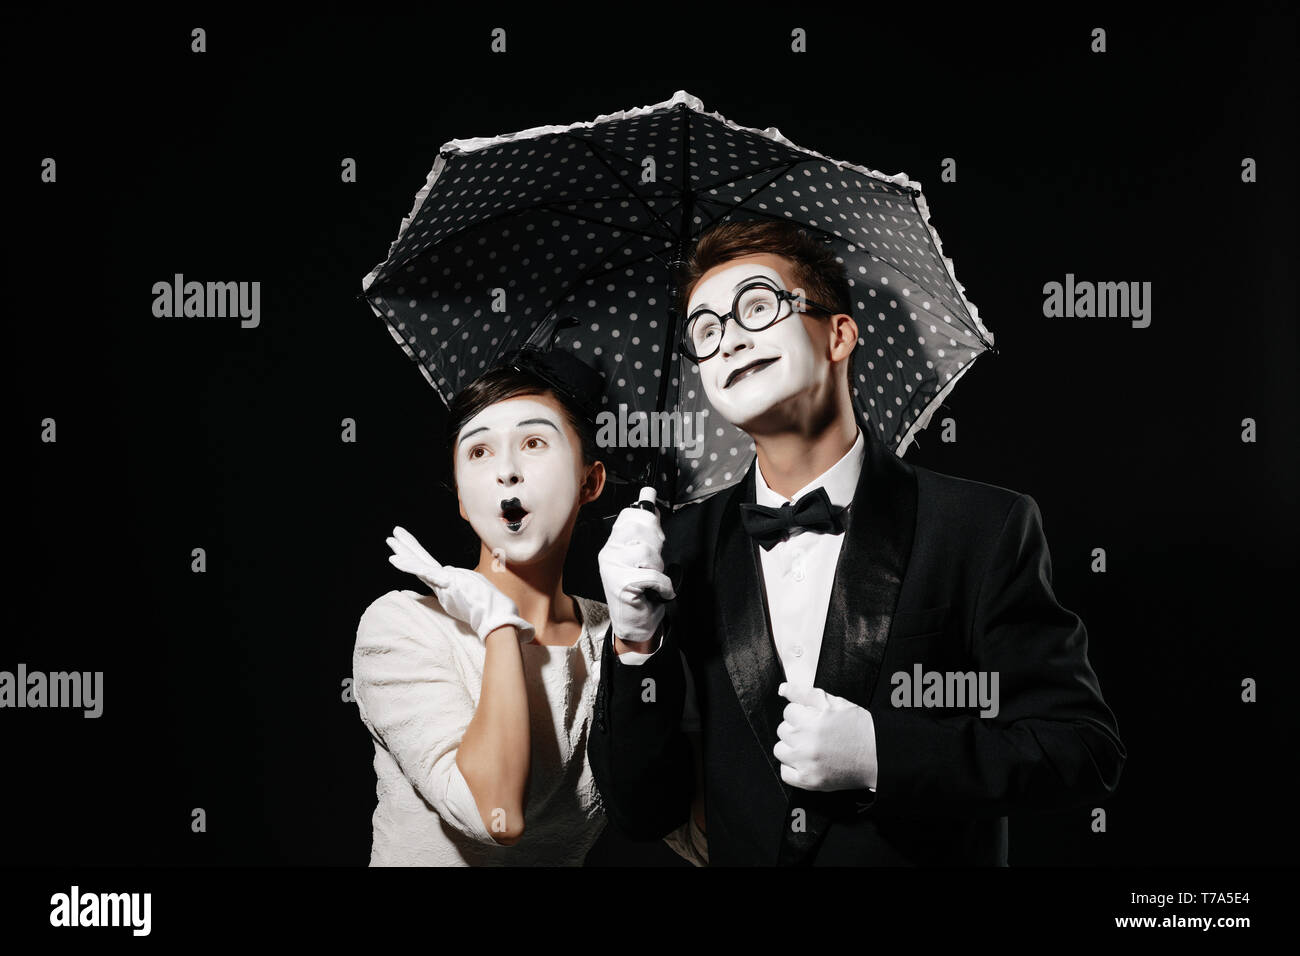 portrait of surprised couple mime with umbrella on black background. man in tuxedo and glasses and woman in white dress - Stock Image